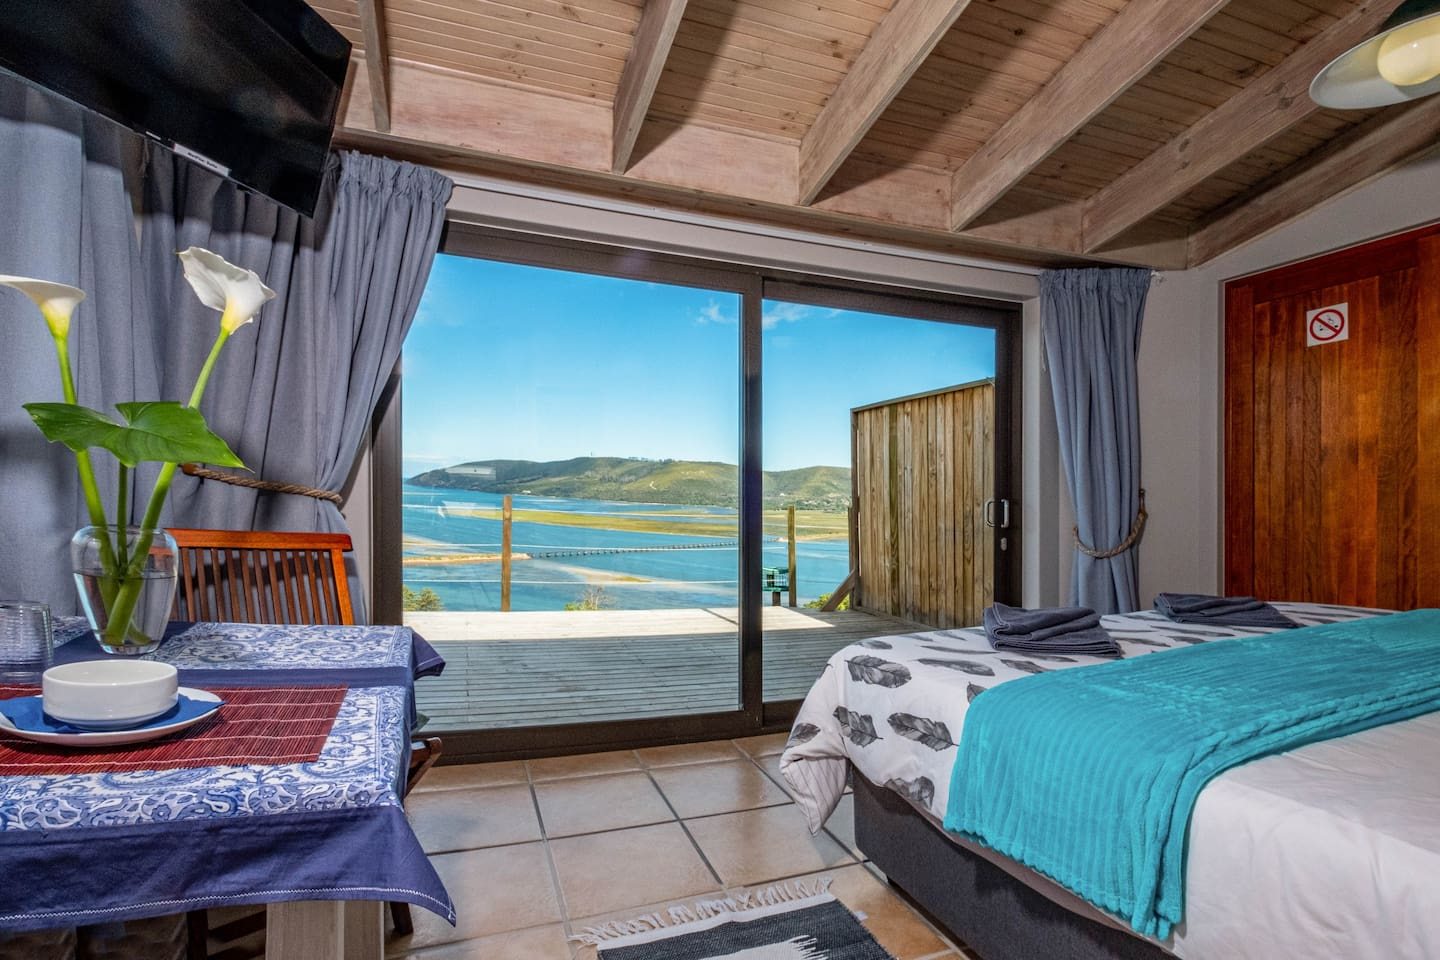 Room with an exceptional view from the king size bed. Private patio to enjoy the panoramic view in the sunshine with a glass of whine! If you are tired of the view, the HD smart TV will keep you company ;-)